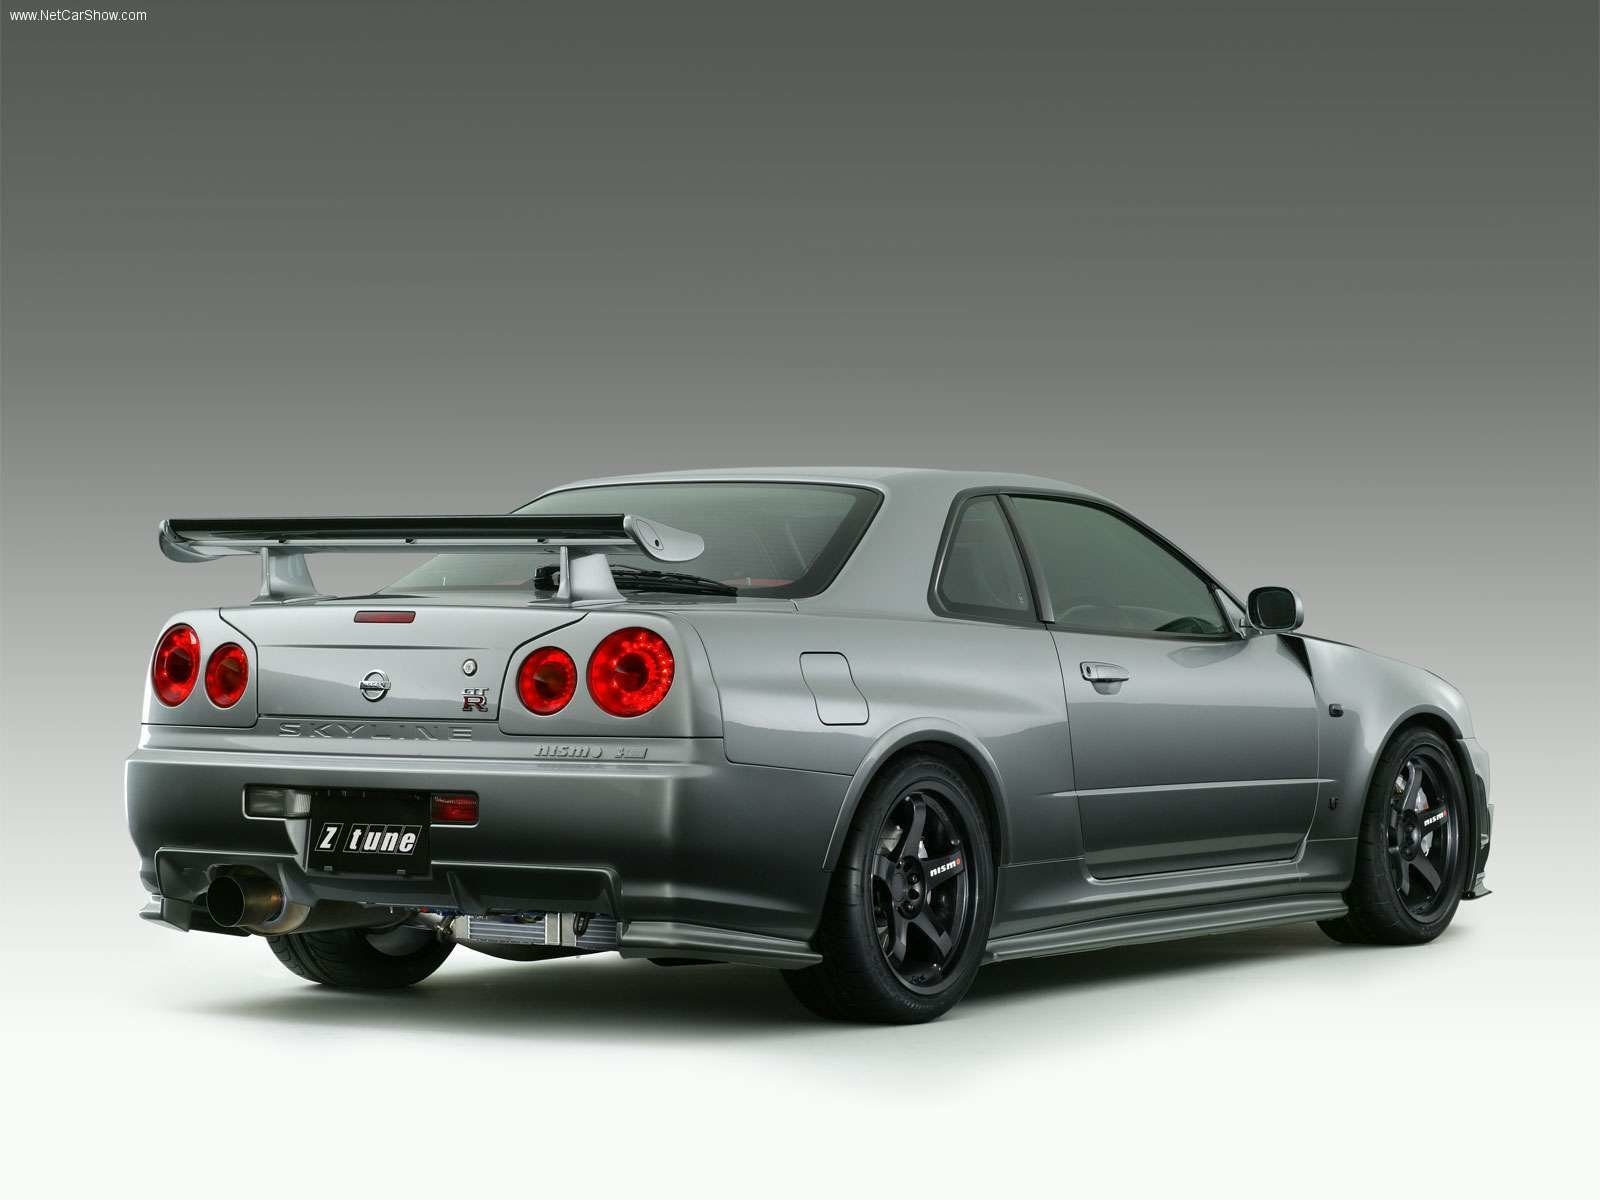 Vehicles - Nissan  Show Net Car Fast Tune Skyline Wallpaper